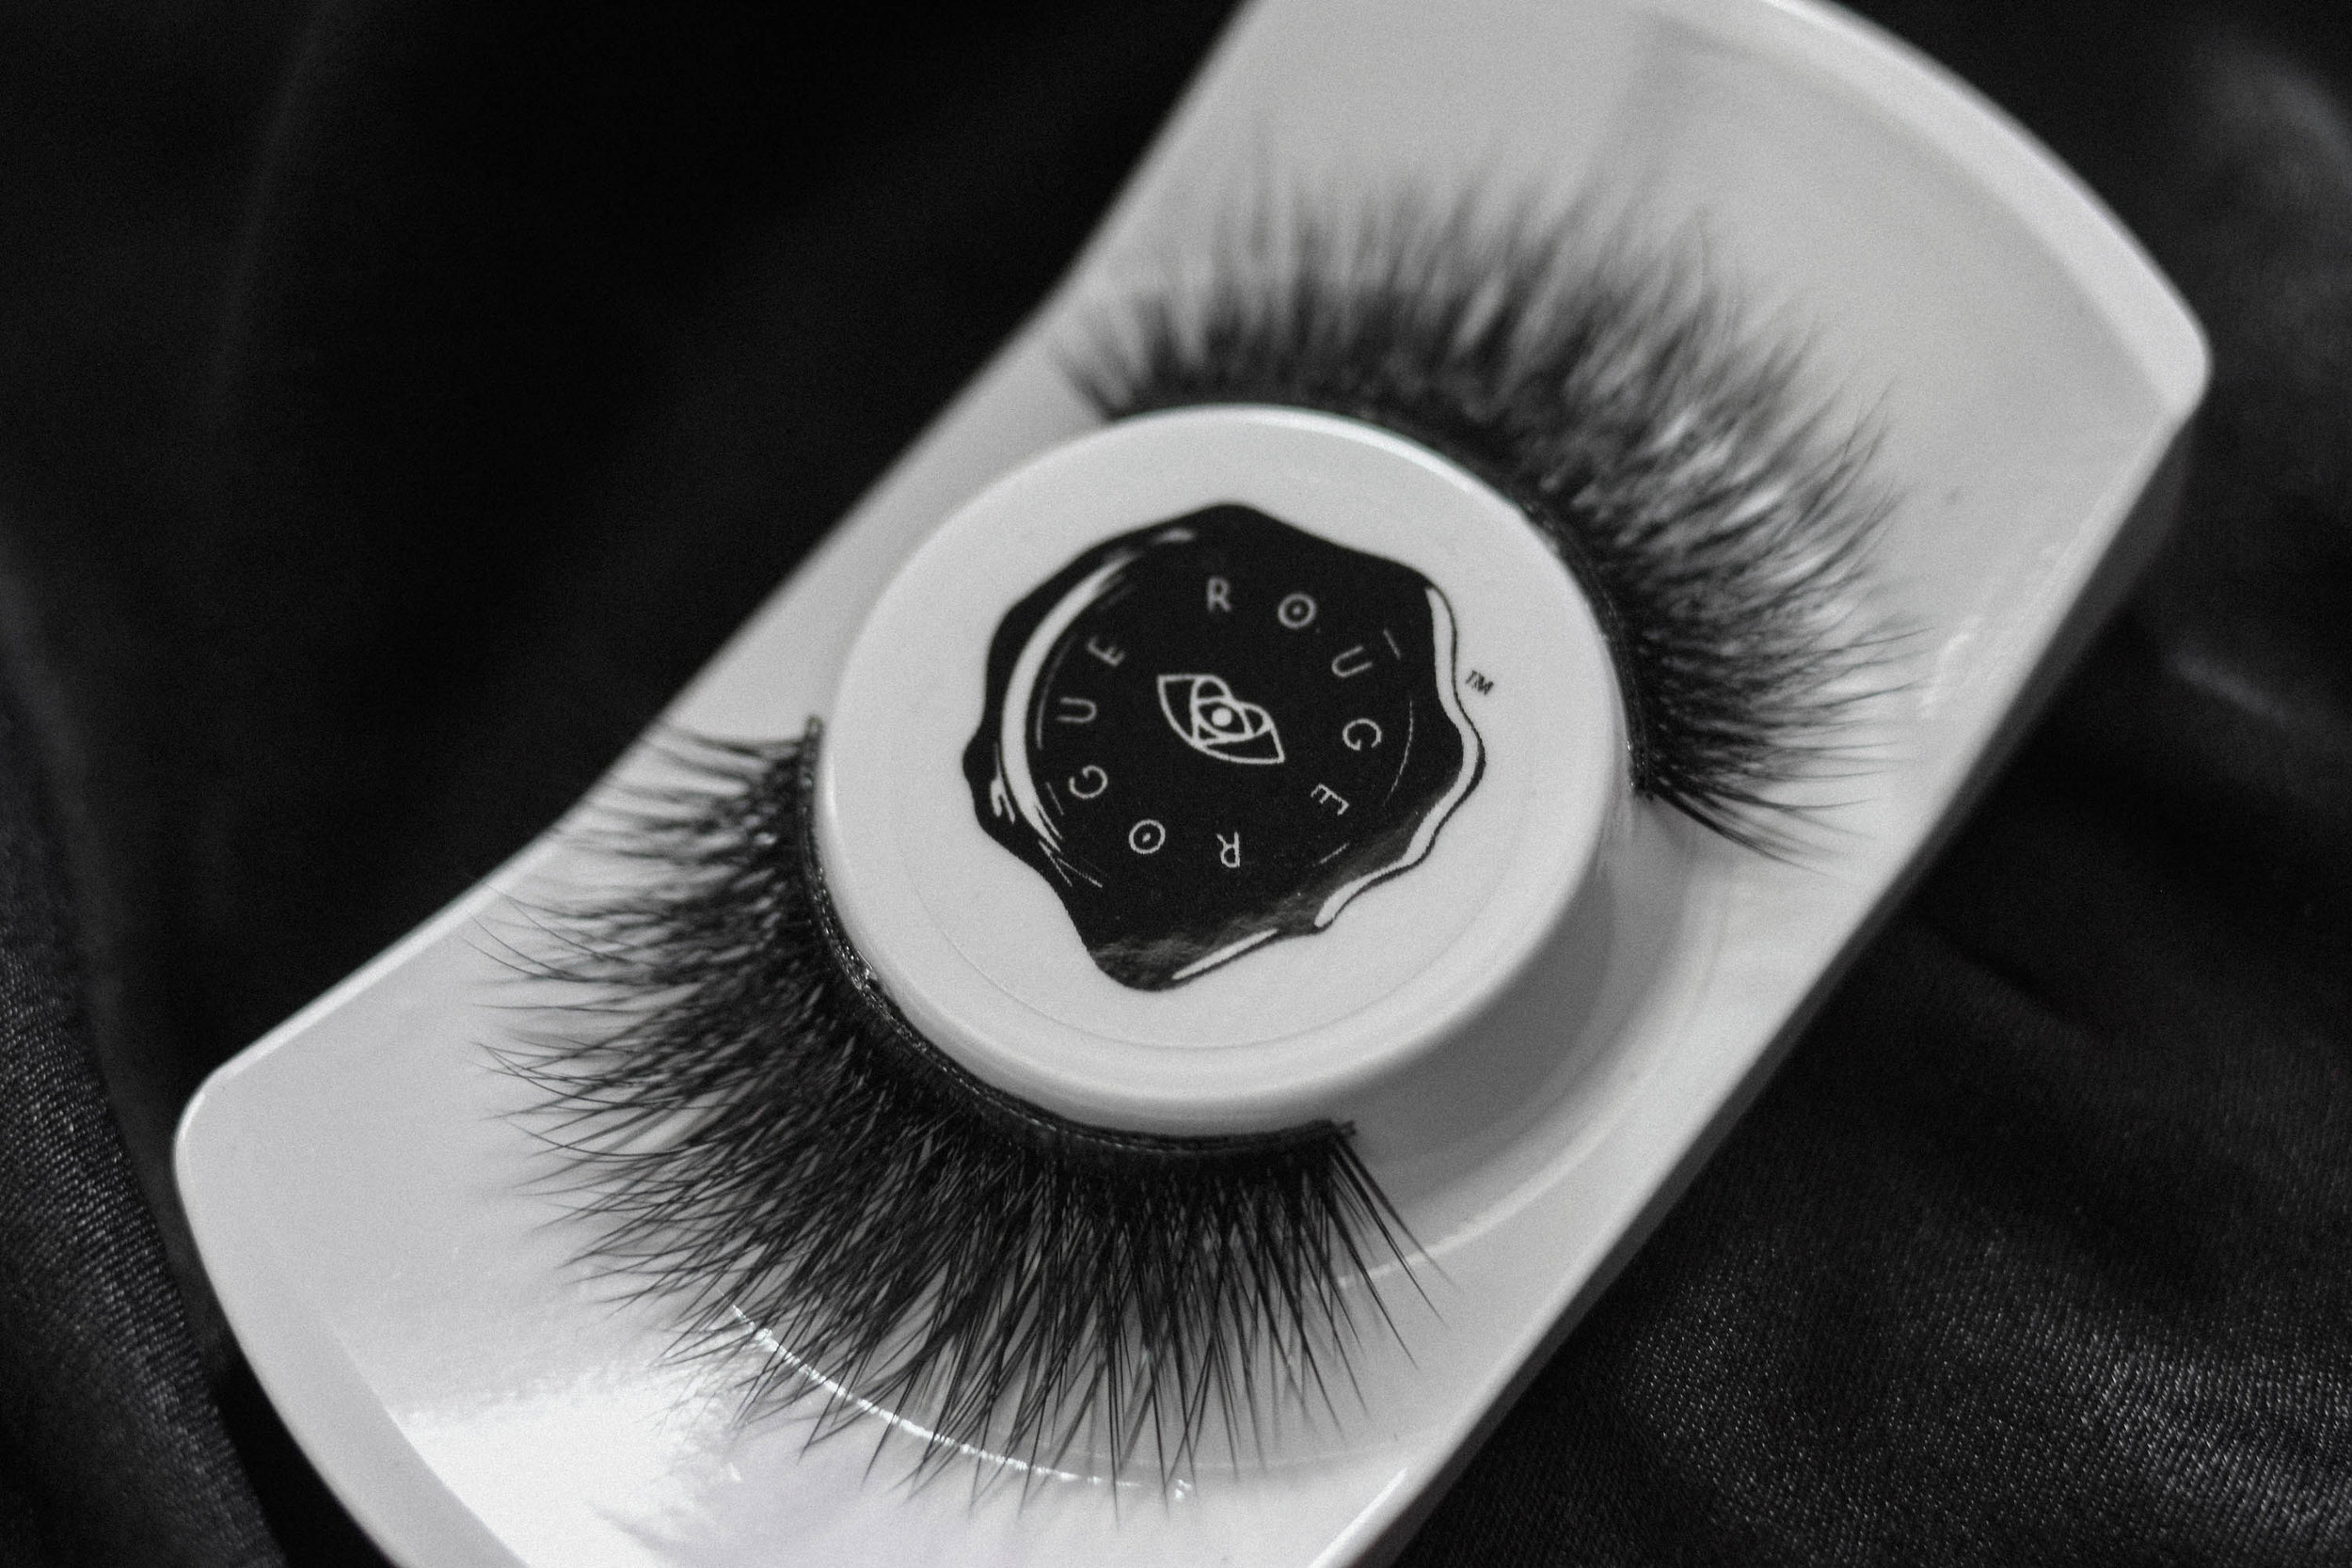 Eclipse   Moonlight chasers beware, this lash is so full – get ready for an 'Eclipse'! Mega volume, mega length and mega drama unite in this multi-tiered, dual tapered plush style that integrates our Infinite Volume technology ™, for the ultimate alluring stare. Eclipse will let your eyes shine, but block out the haters.